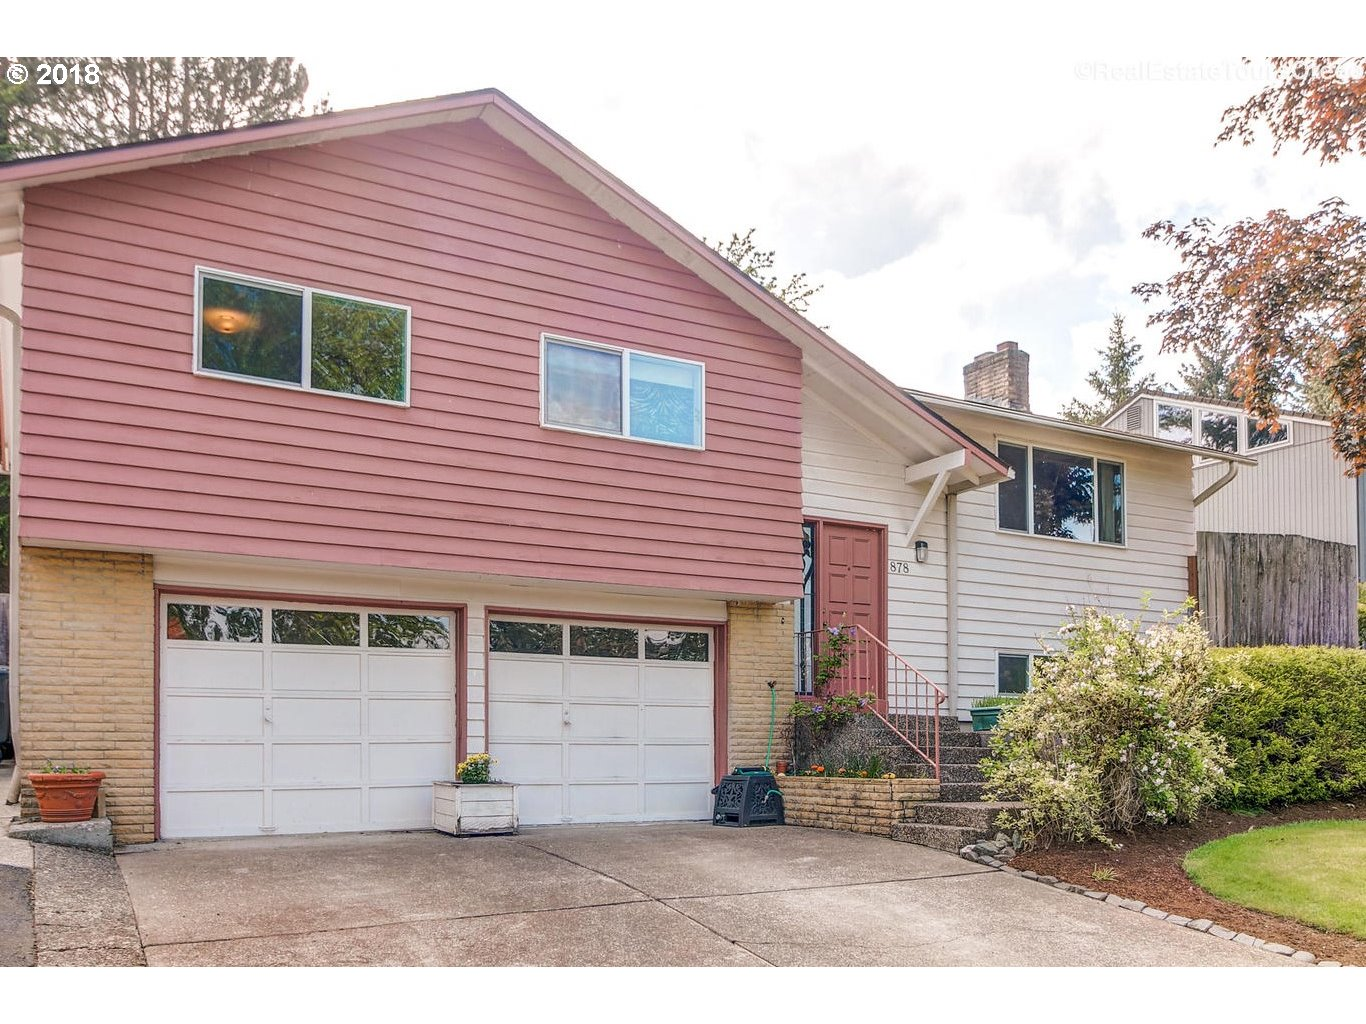 878 NW 8TH DR, Hillsboro, OR 97124